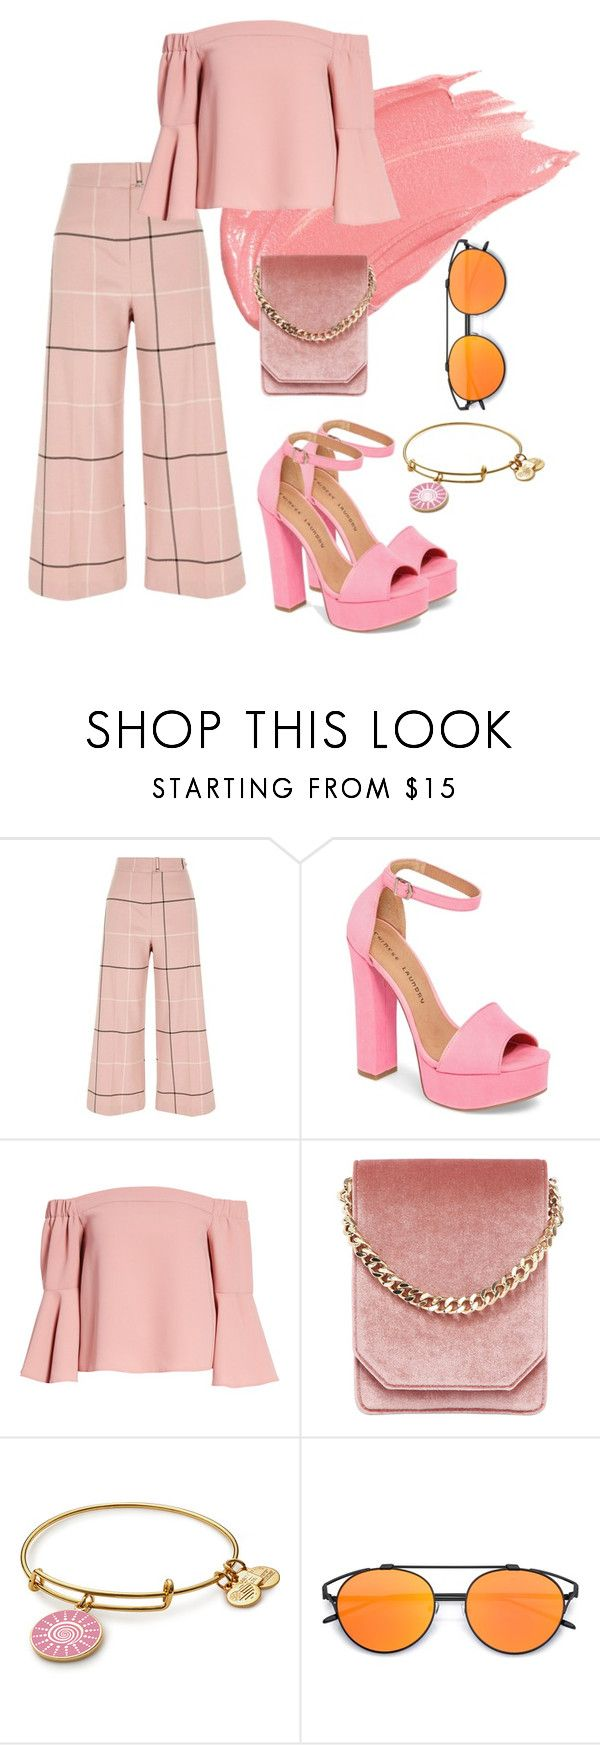 """""""Pretty in pink"""" by fandom-trash-stan on Polyvore featuring River Island, Chinese Laundry, Topshop and Cafuné"""